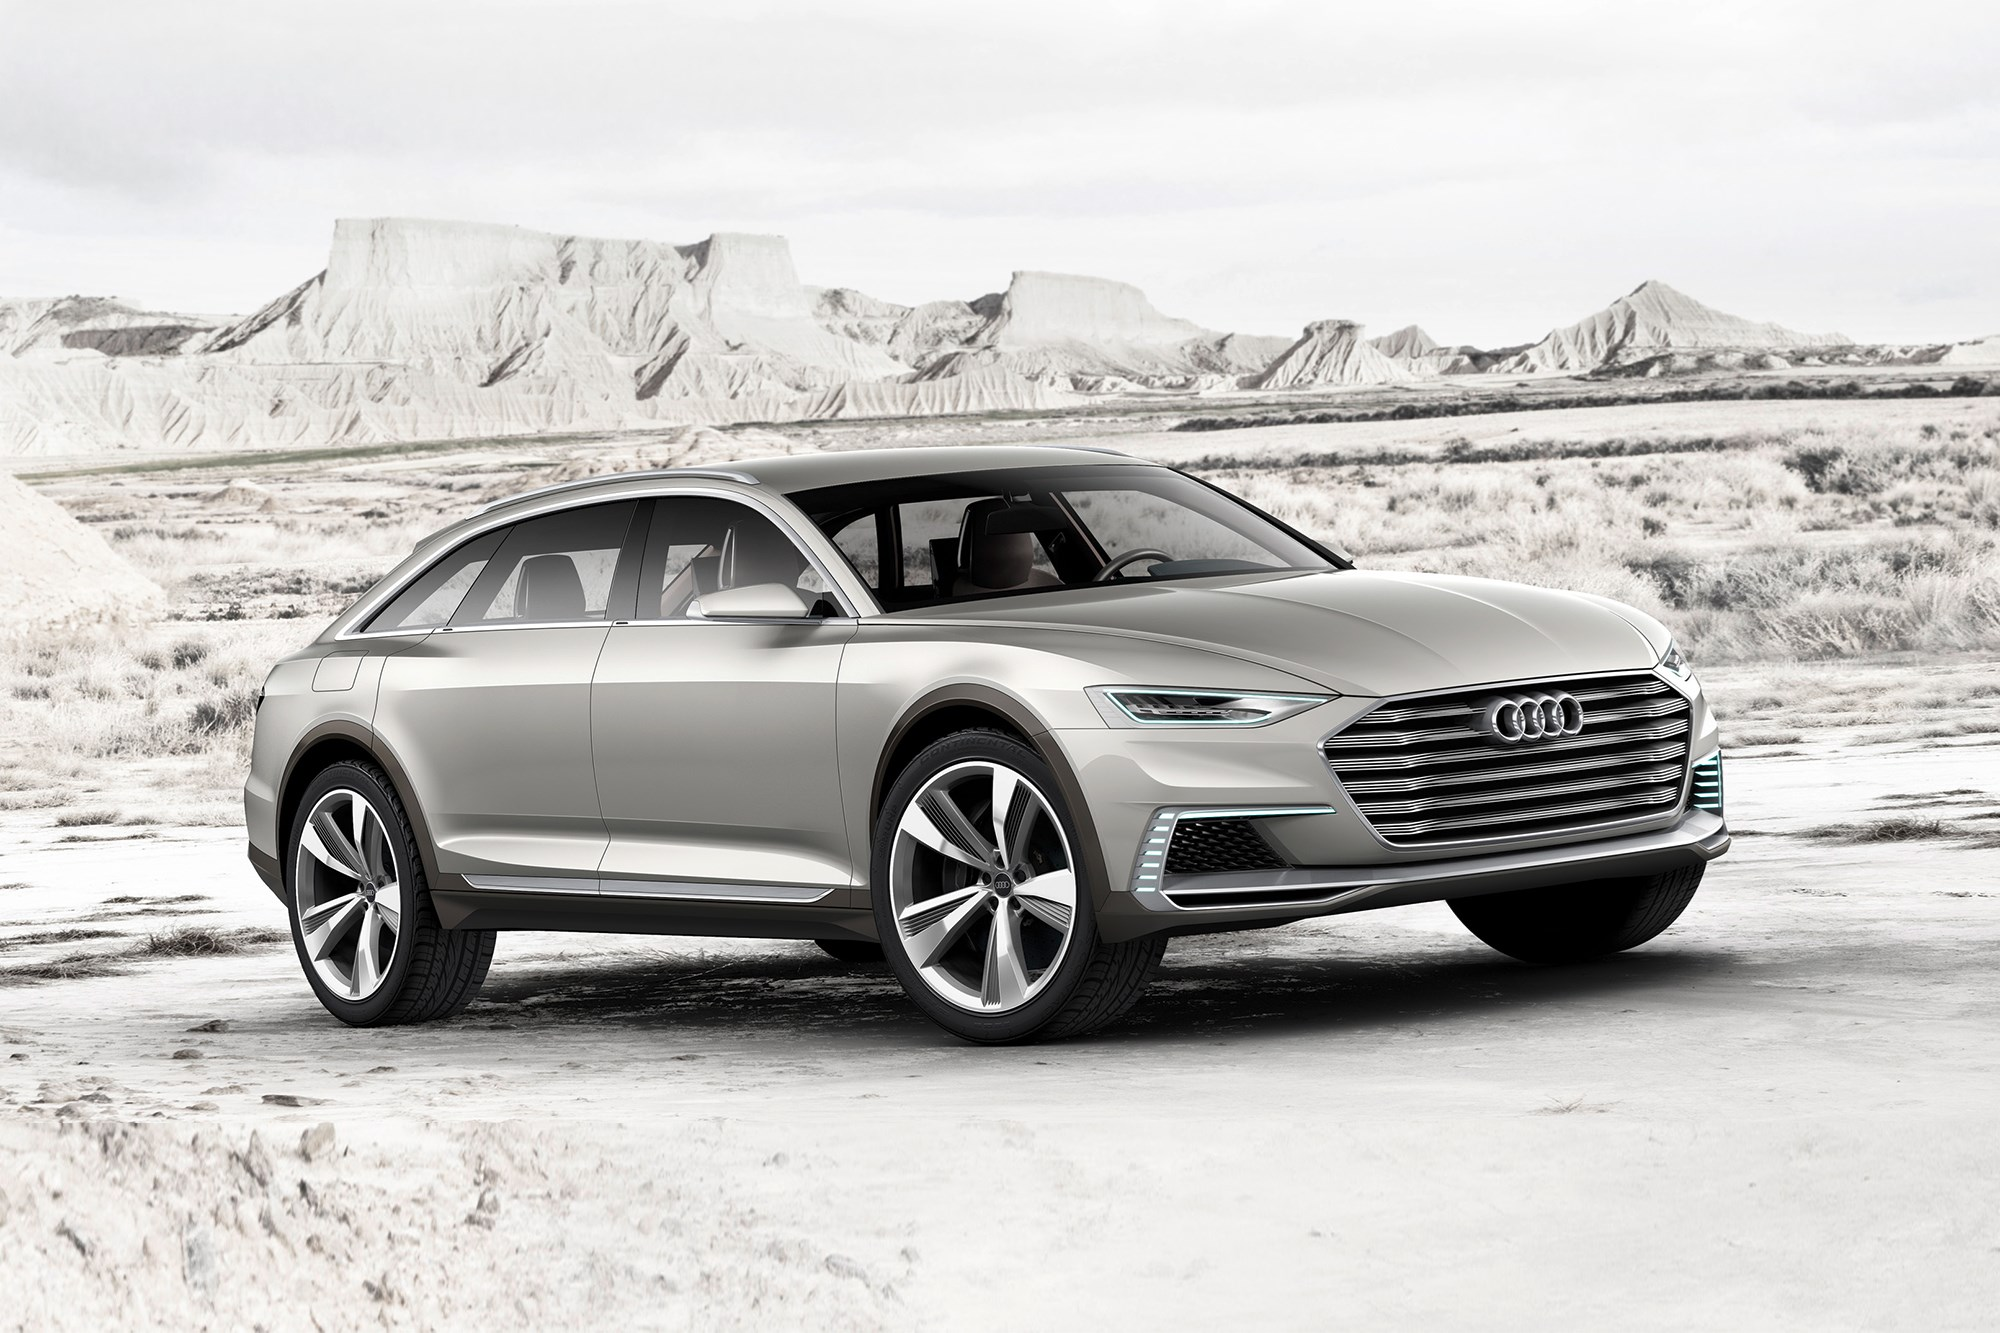 audi prologue allroad concept car veers off road at auto shanghai 2015 by car magazine. Black Bedroom Furniture Sets. Home Design Ideas